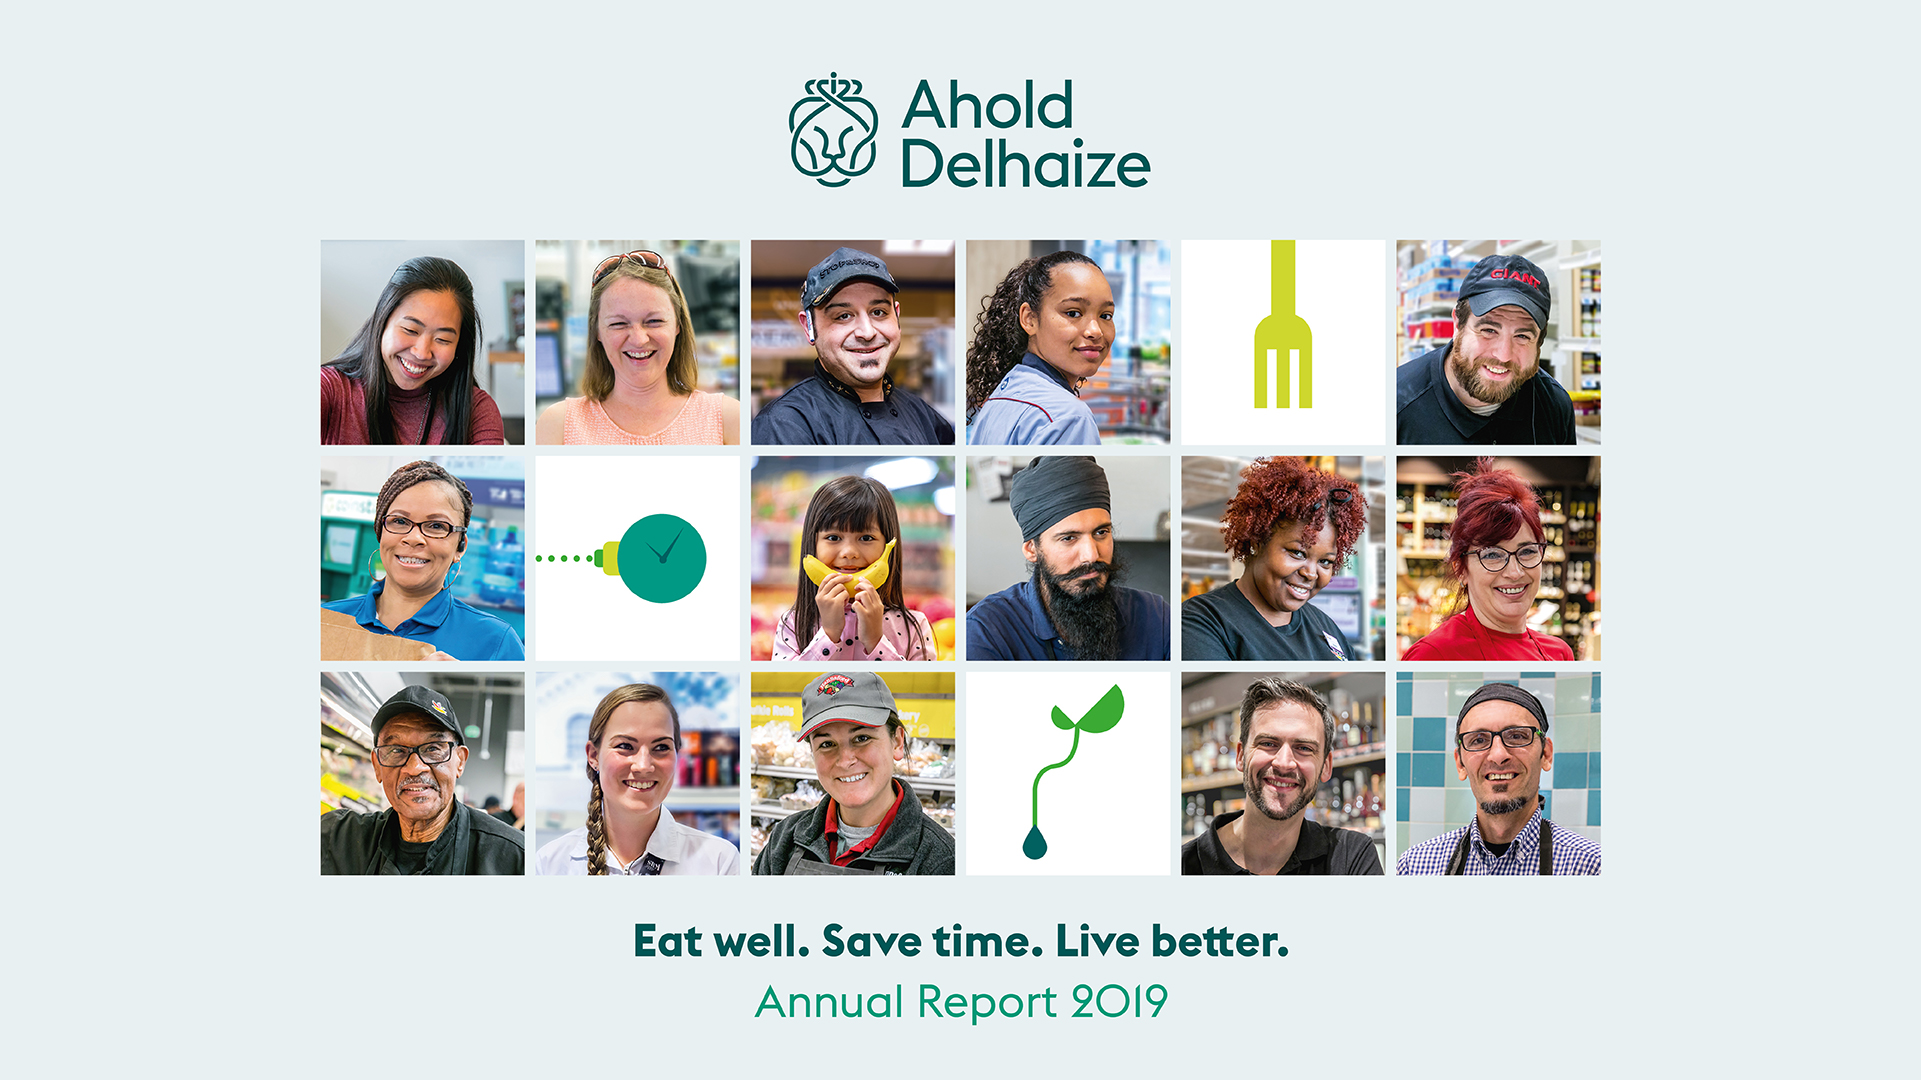 Ahold Delhaize publishes 2019 Annual Report and issues convocation for 2020 Annual General Meeting of shareholders